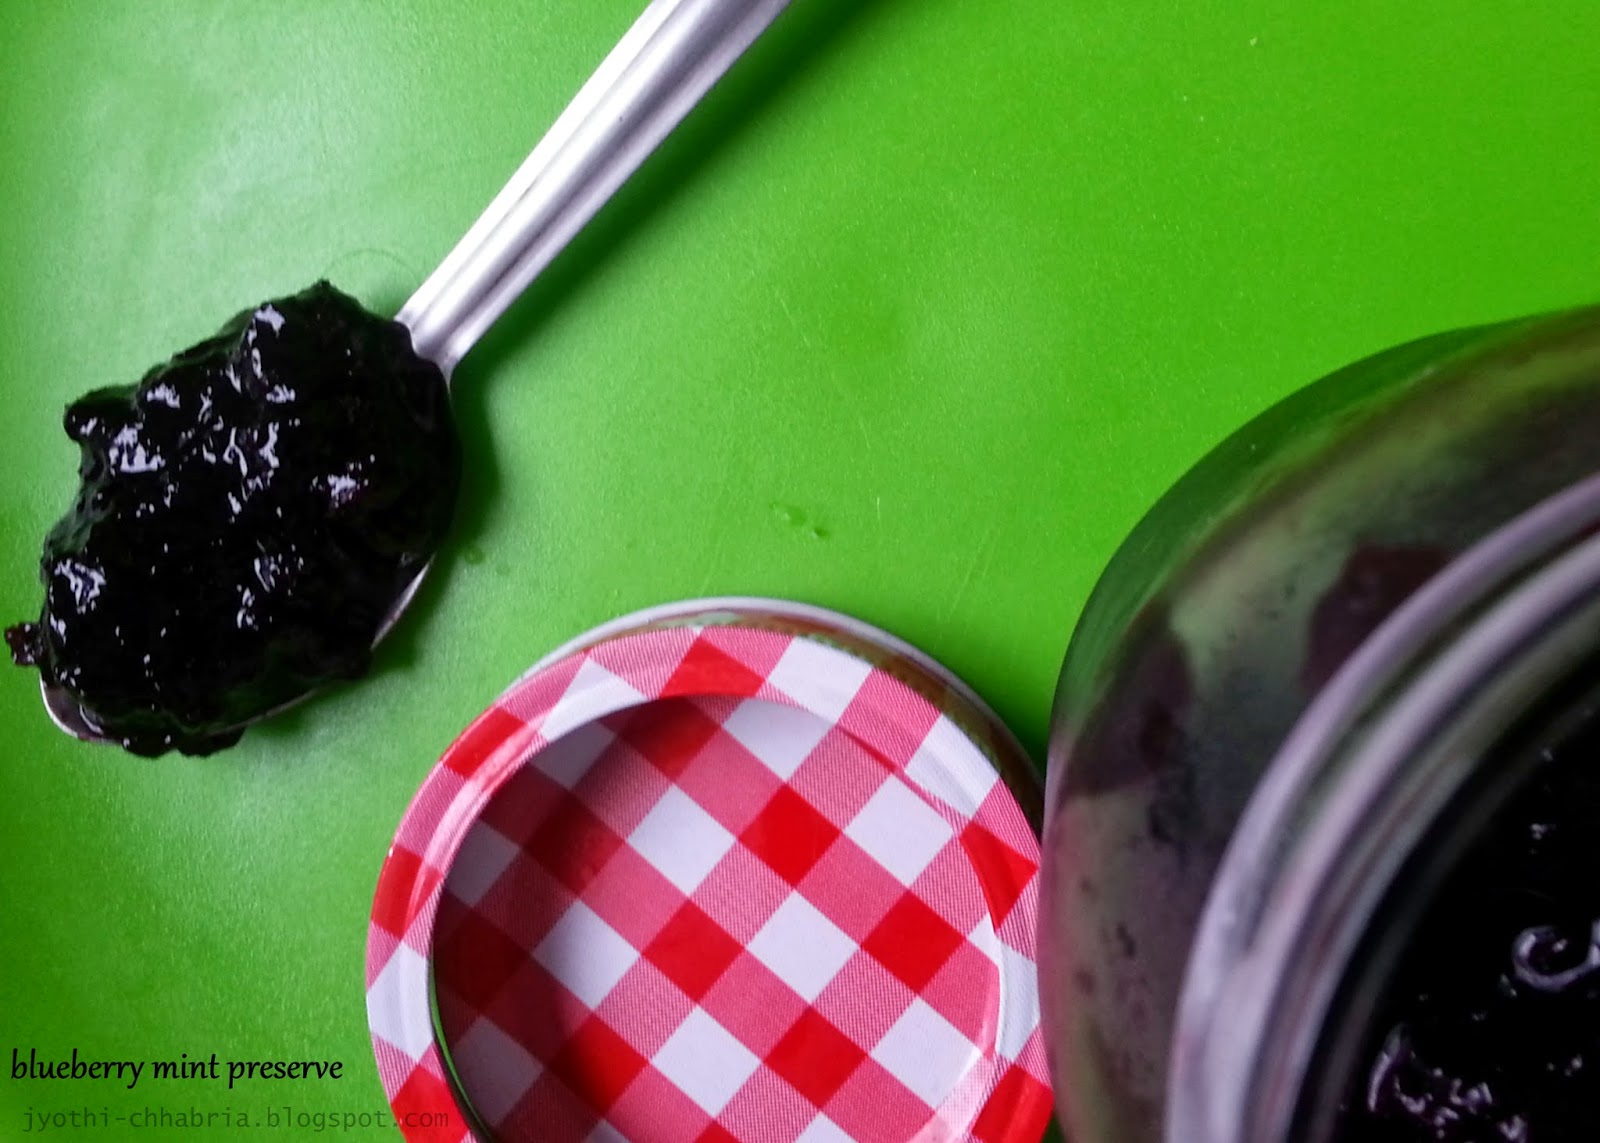 Blueberry Mint Preserve Recipe